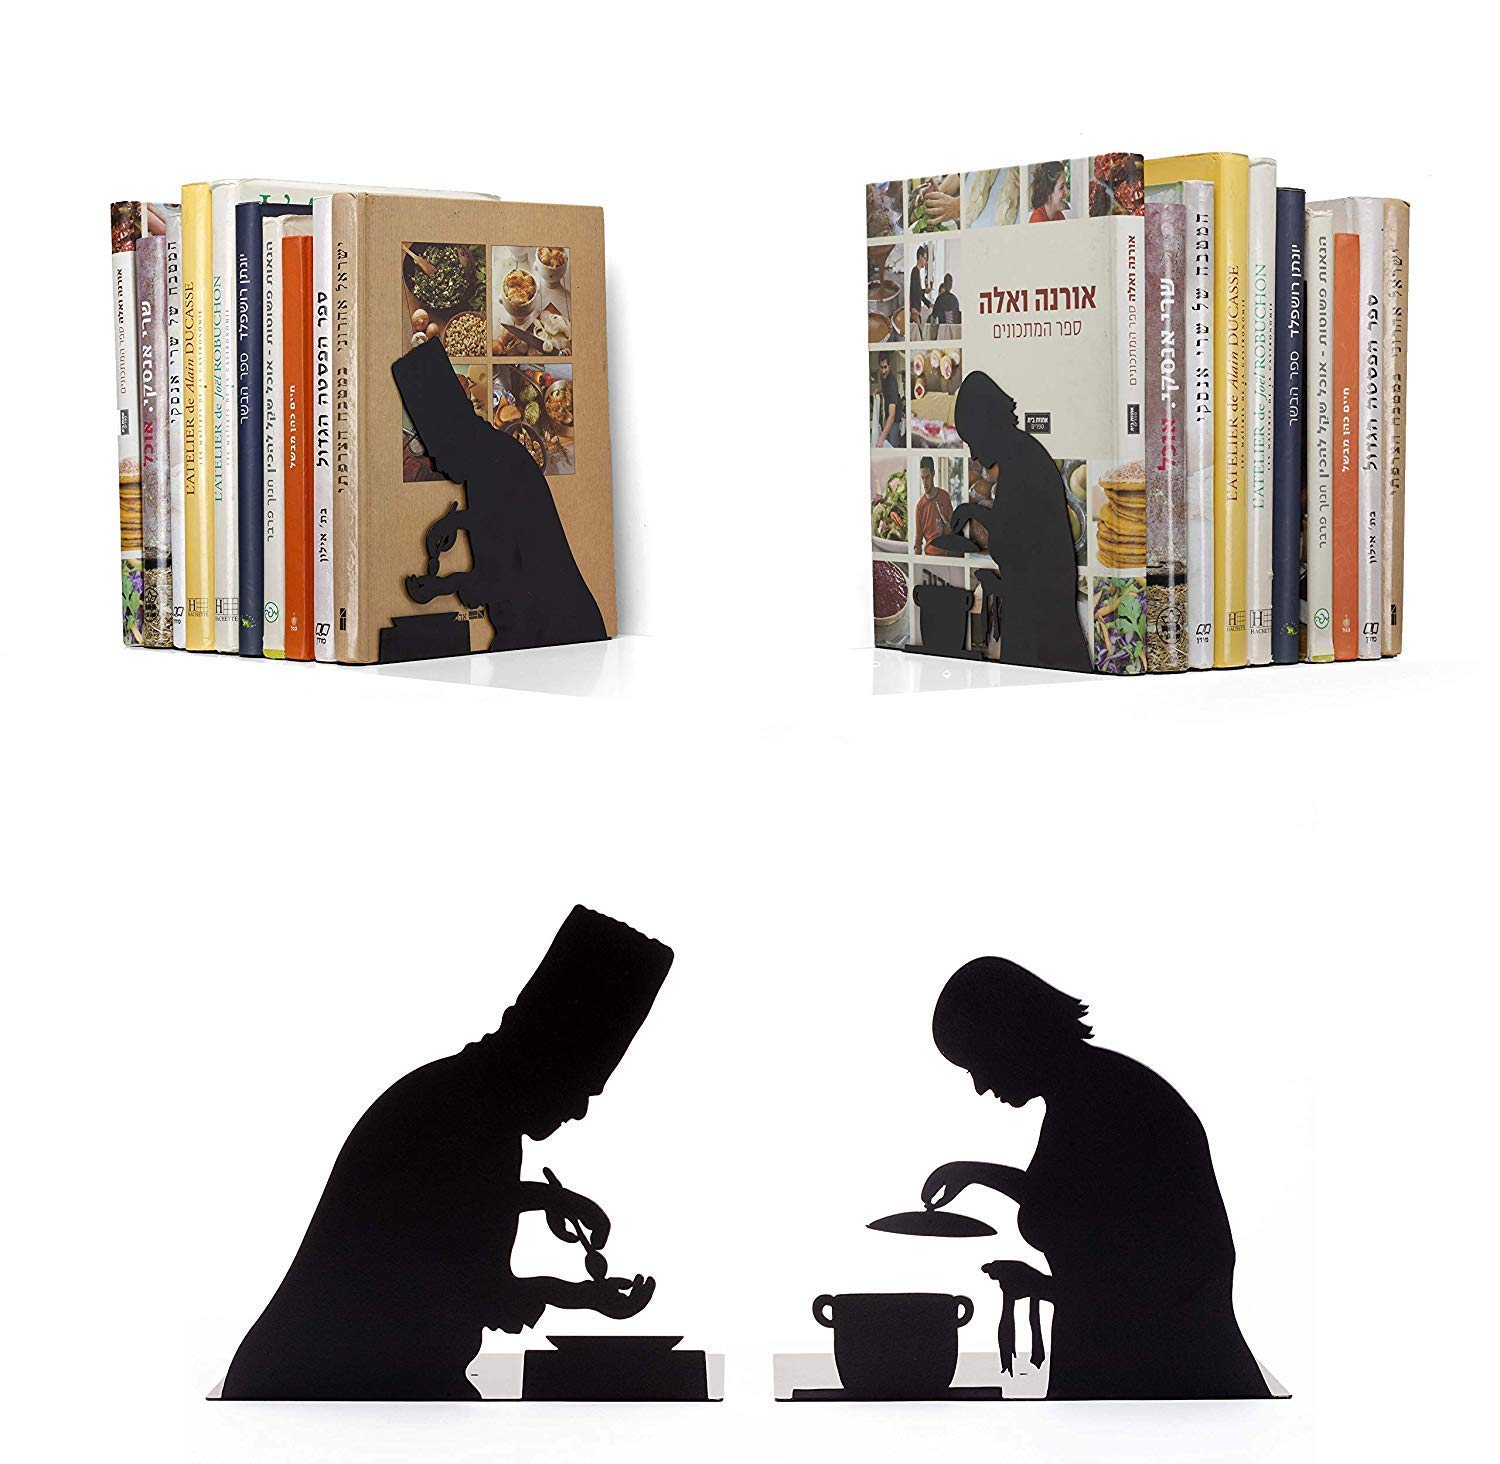 Delicieux Amazon.com: Artori Design| By The Book | Cooking | Decorative Black Metal  Bookend | Two Cooks | Kitchen Bookends | Cooking Books Bookend | Gifts For  Chefs: ...